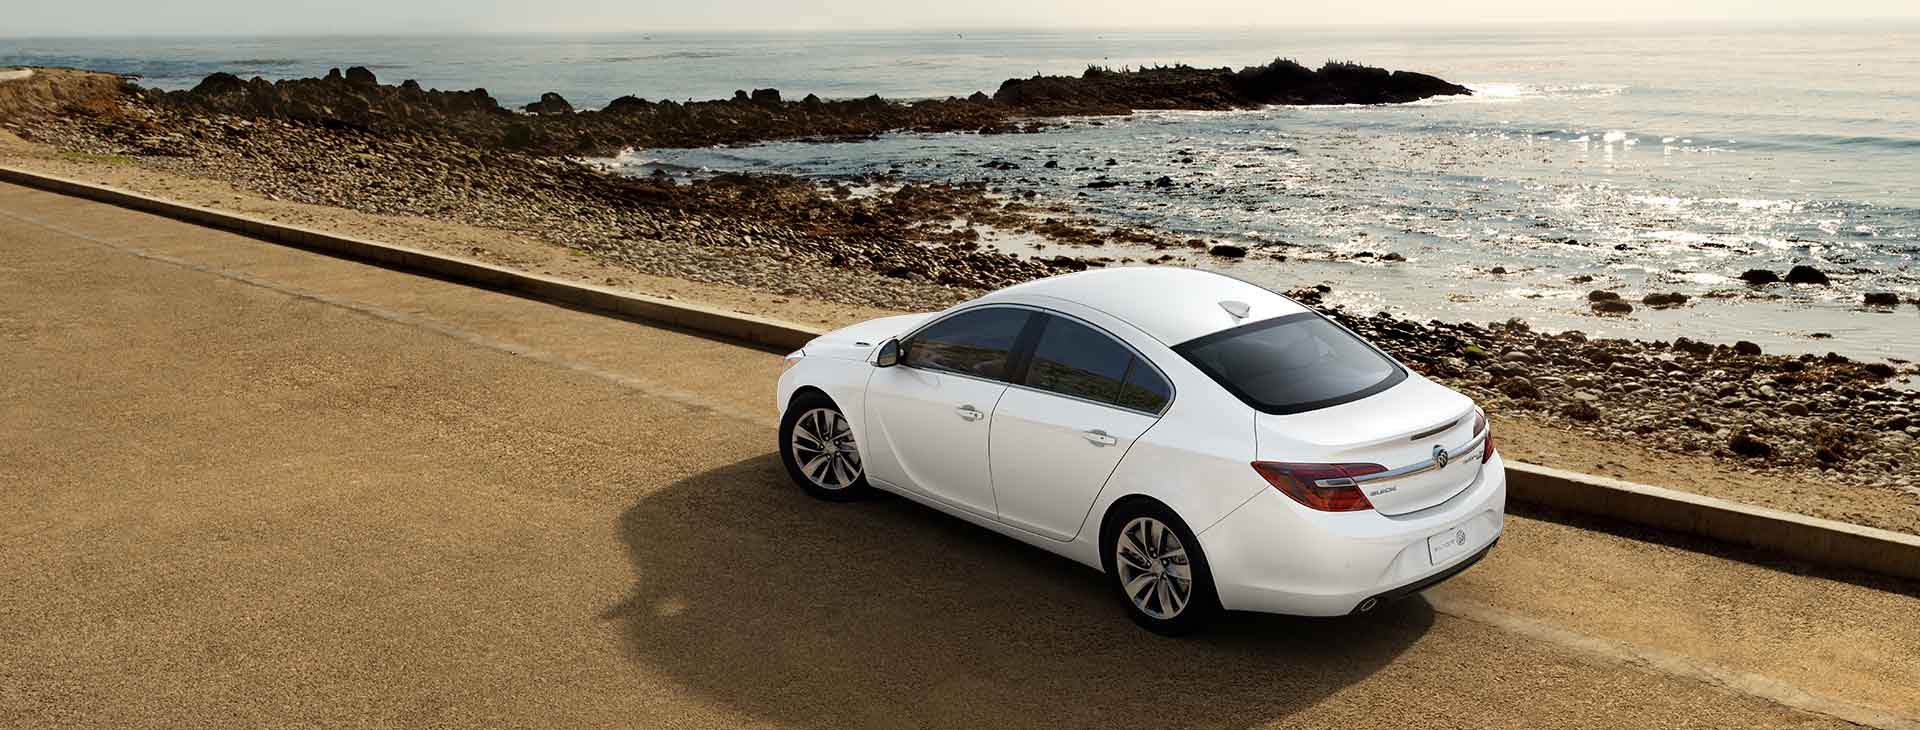 2017 Buick Regal photo - 2